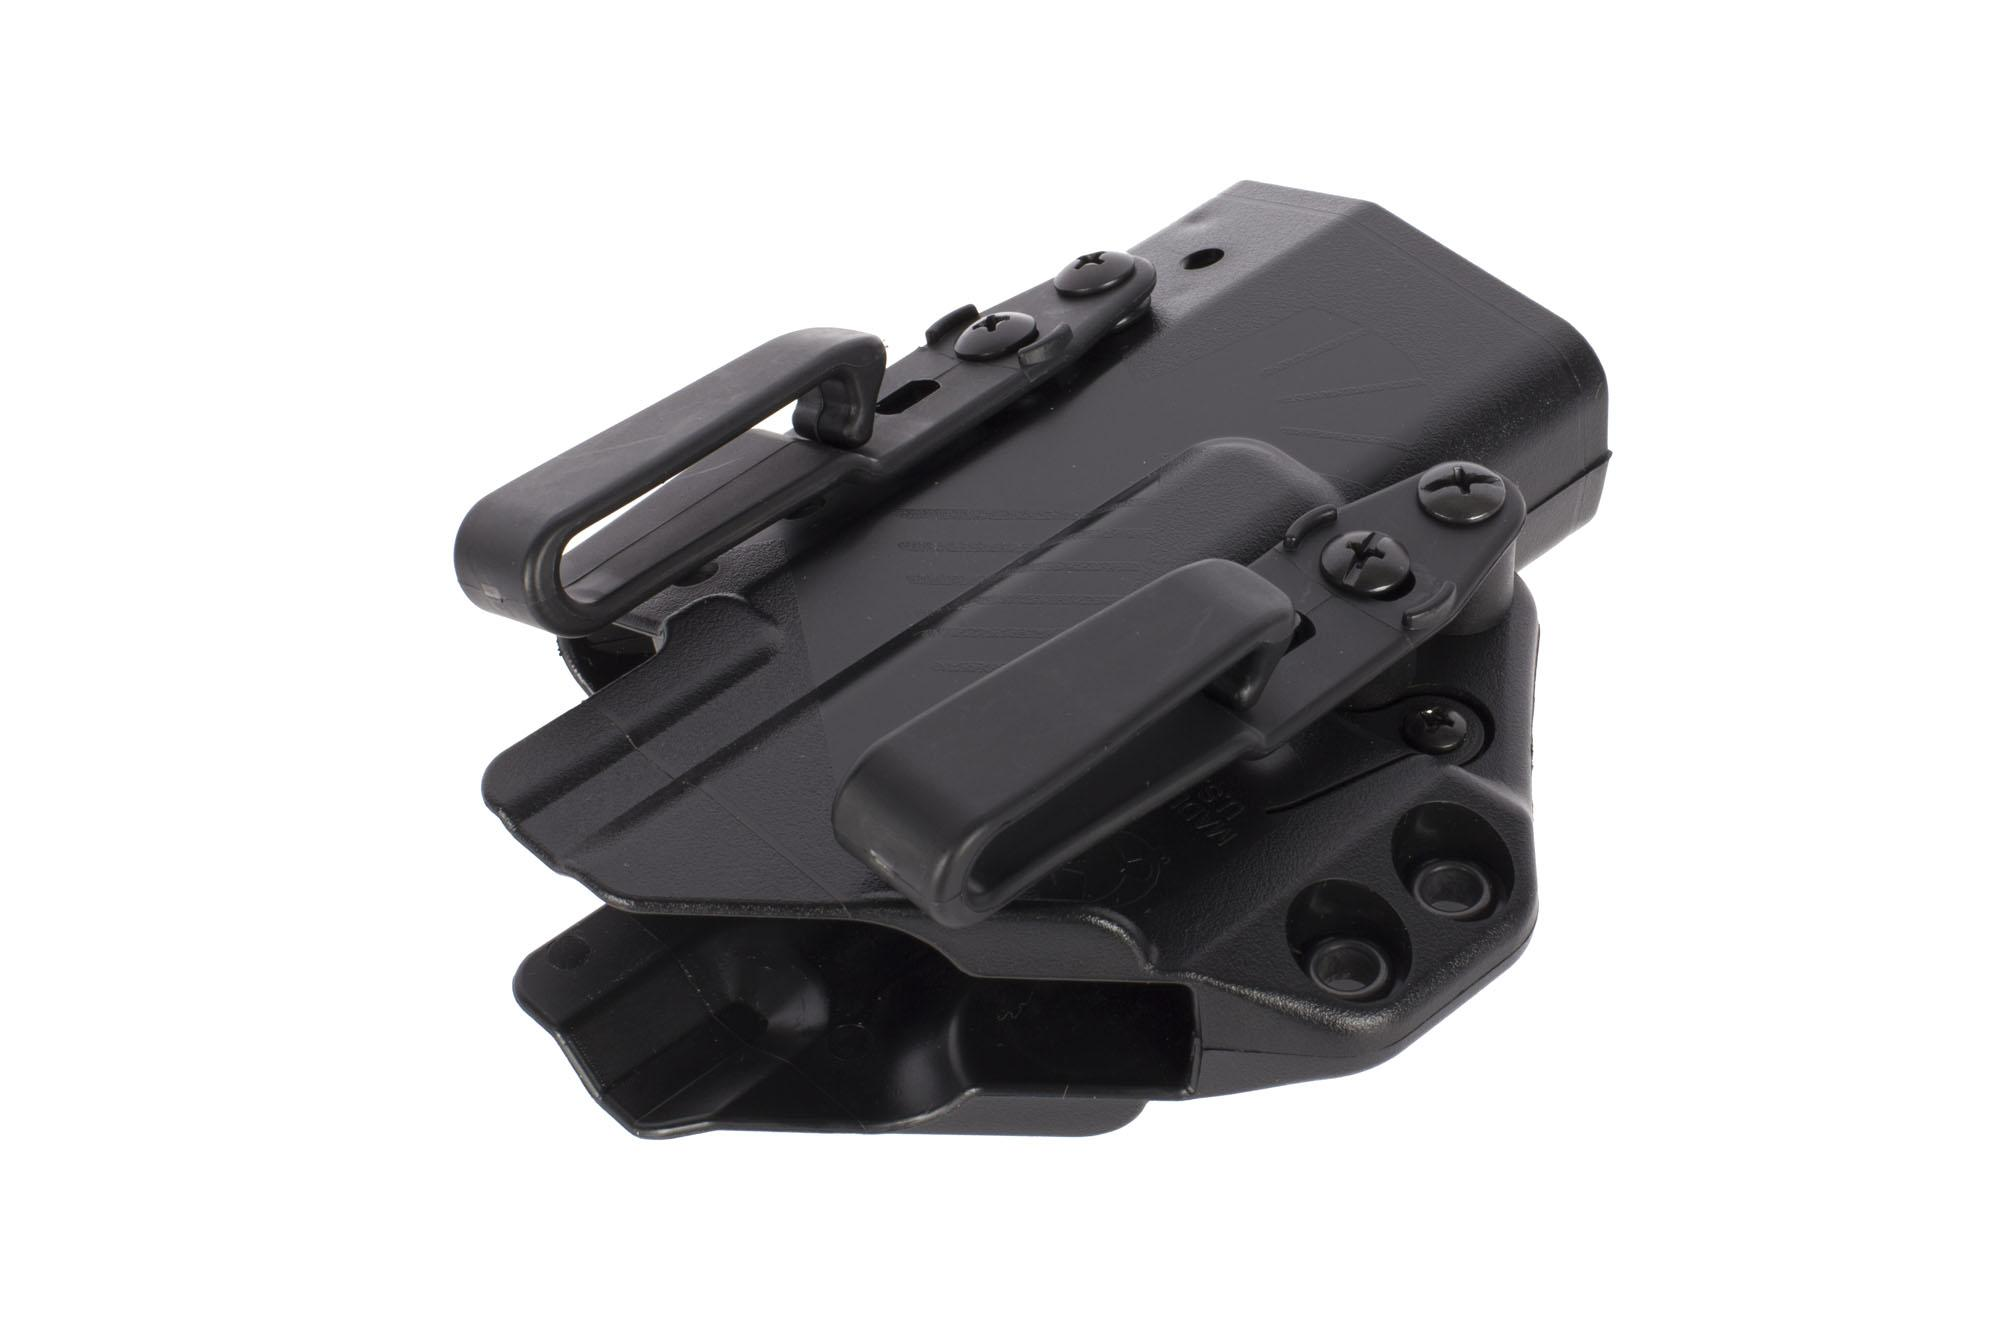 Raven Concealment Systems - Eidolon Basic IWB Holster - GLOCK 19/23/26/27/32/33 - Black